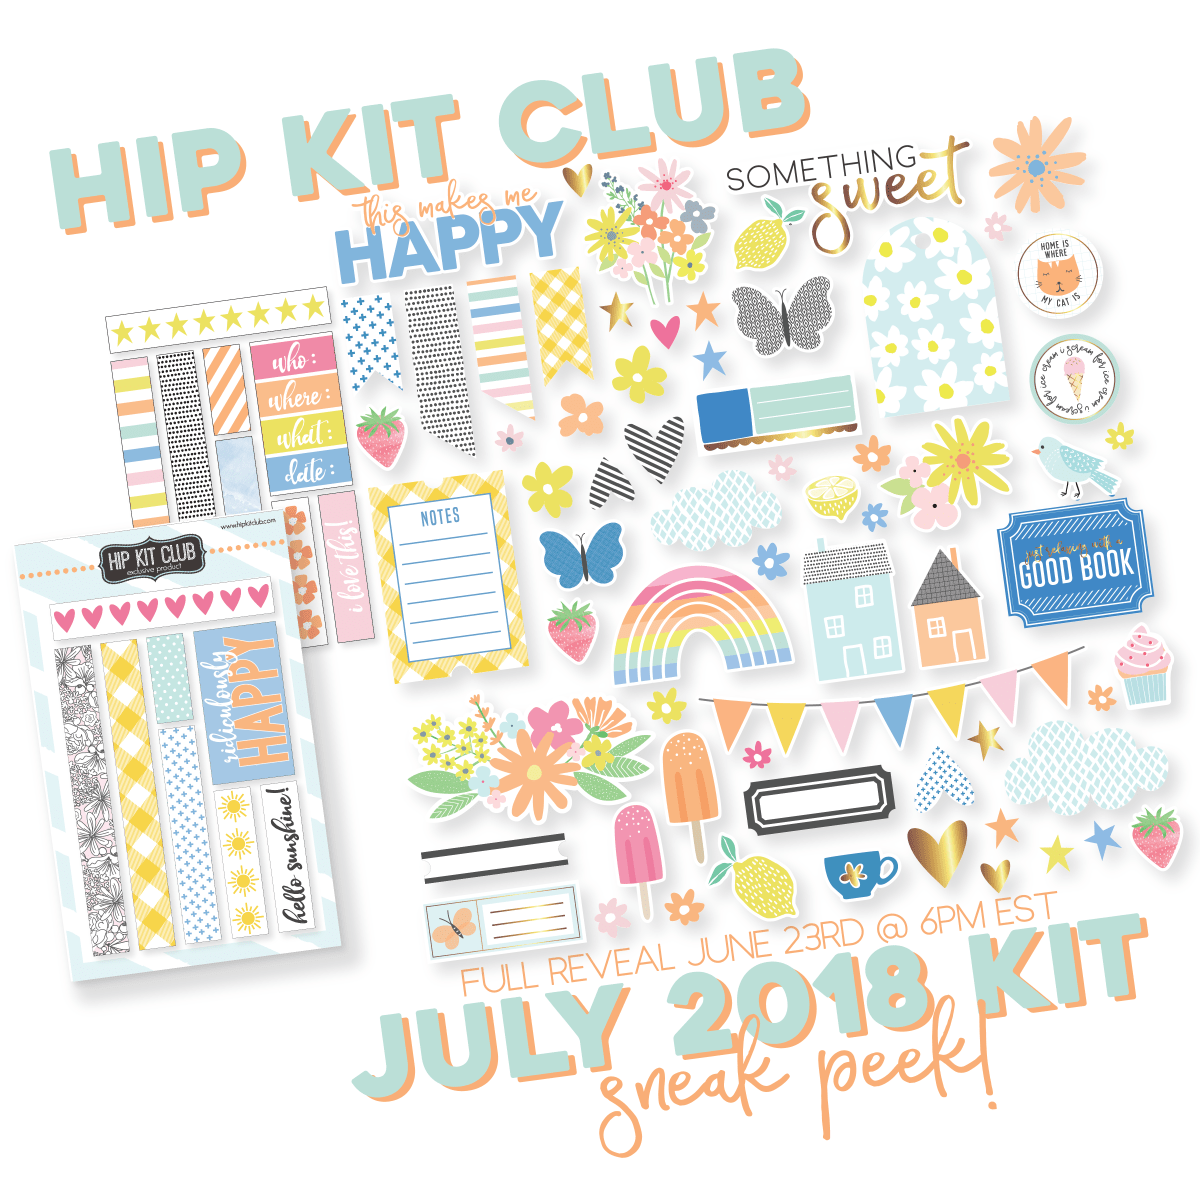 JULY 2018 HIP KIT SNEAK PEEK #1...